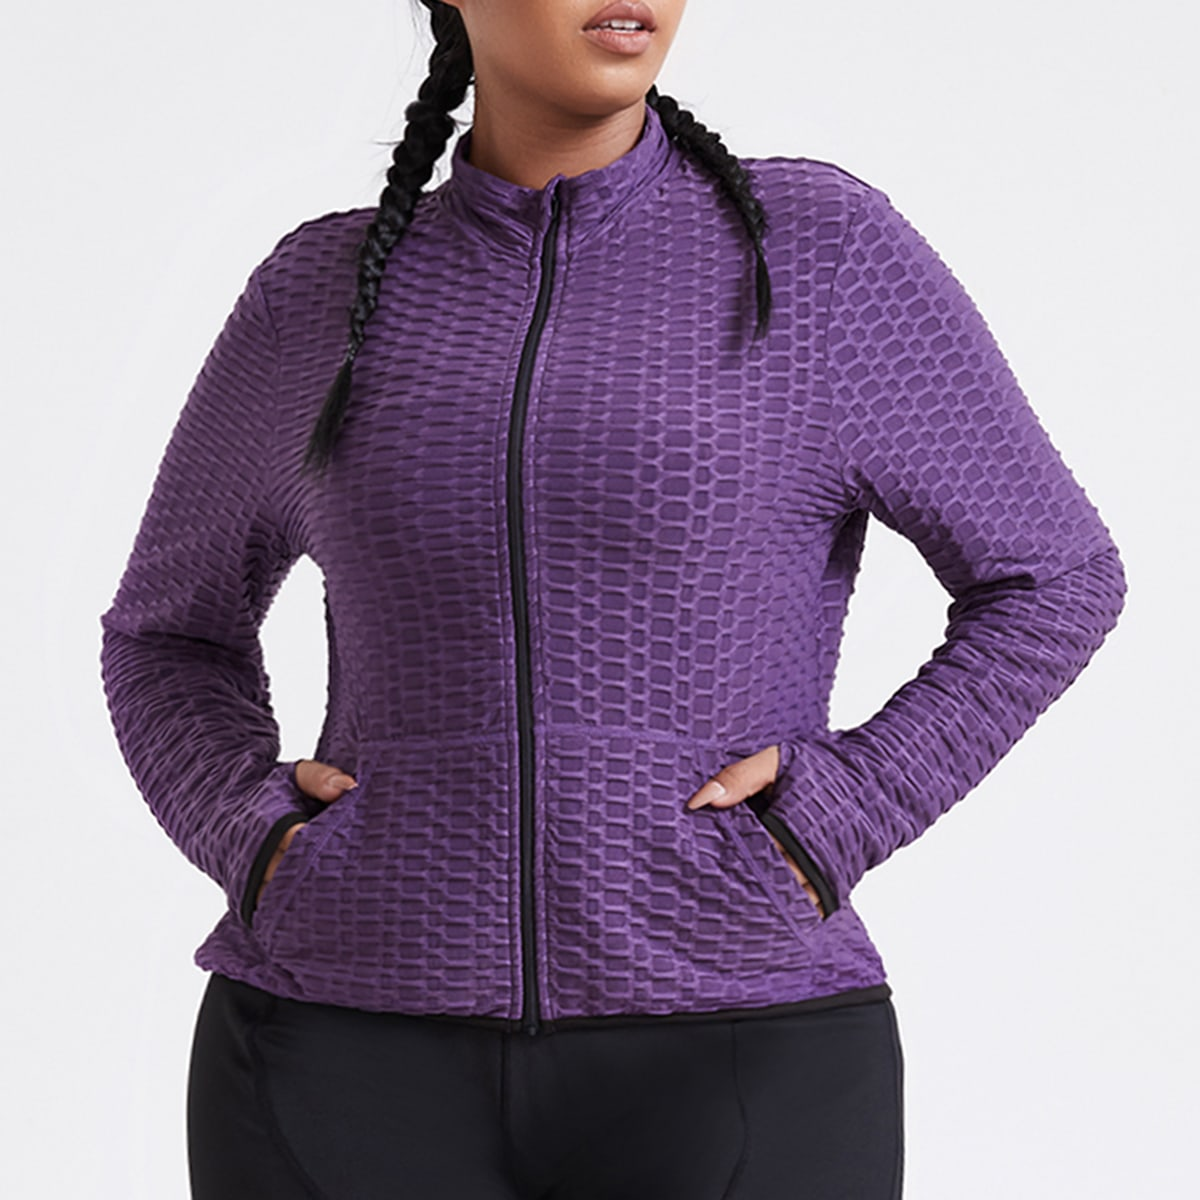 Plus Honeycomb Textured Zip Up Pocket Front Sports Jacket, SHEIN  - buy with discount